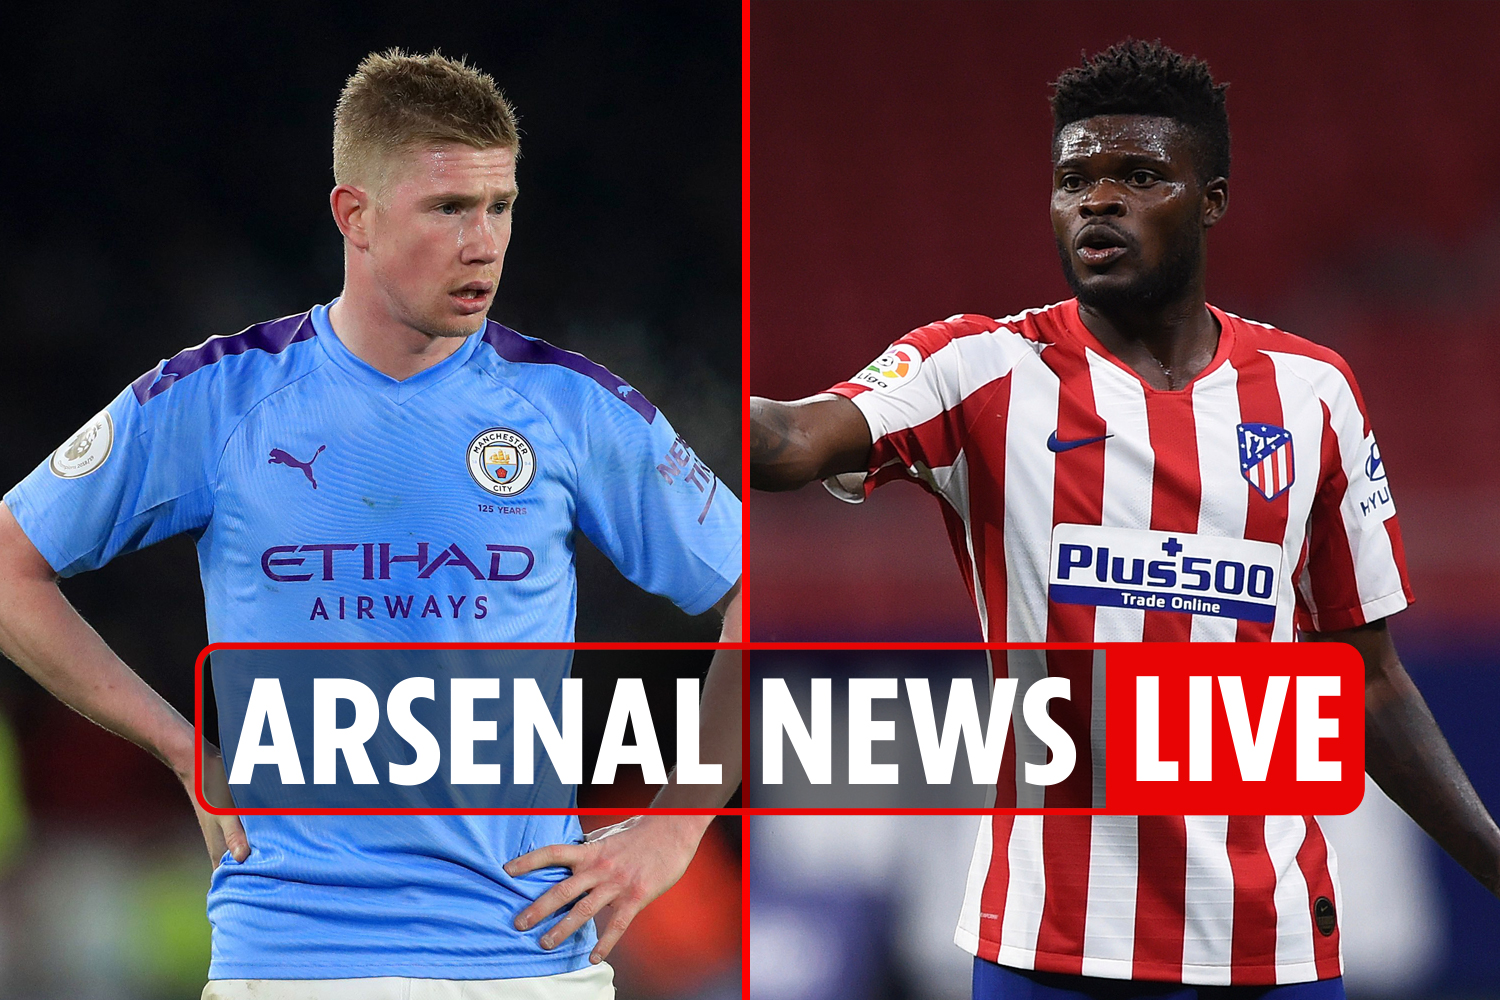 7am Arsenal news LIVE: Partey preparing for debut, De Bruyne OUT vs City, Tierney UPDATE, Saliba transfer